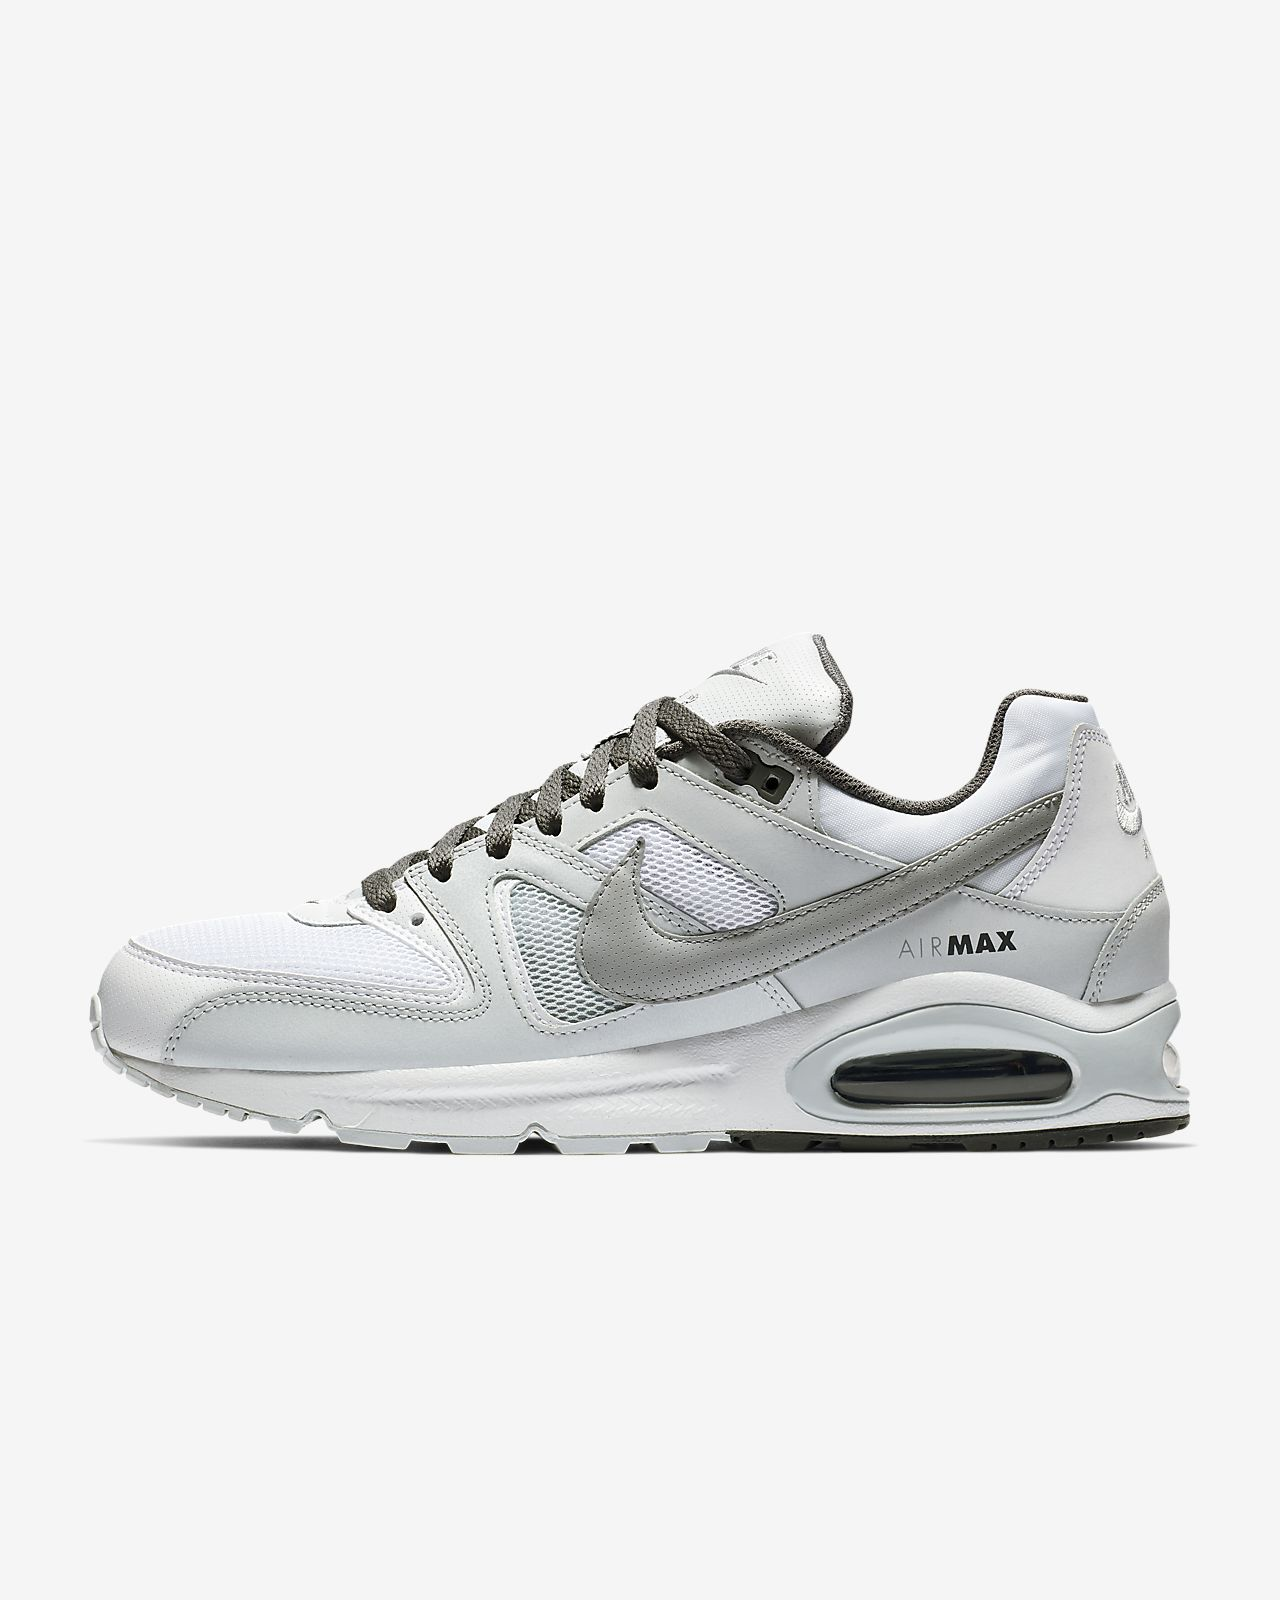 separation shoes 5bfde e1770 ... Nike Air Max Command Herrenschuh